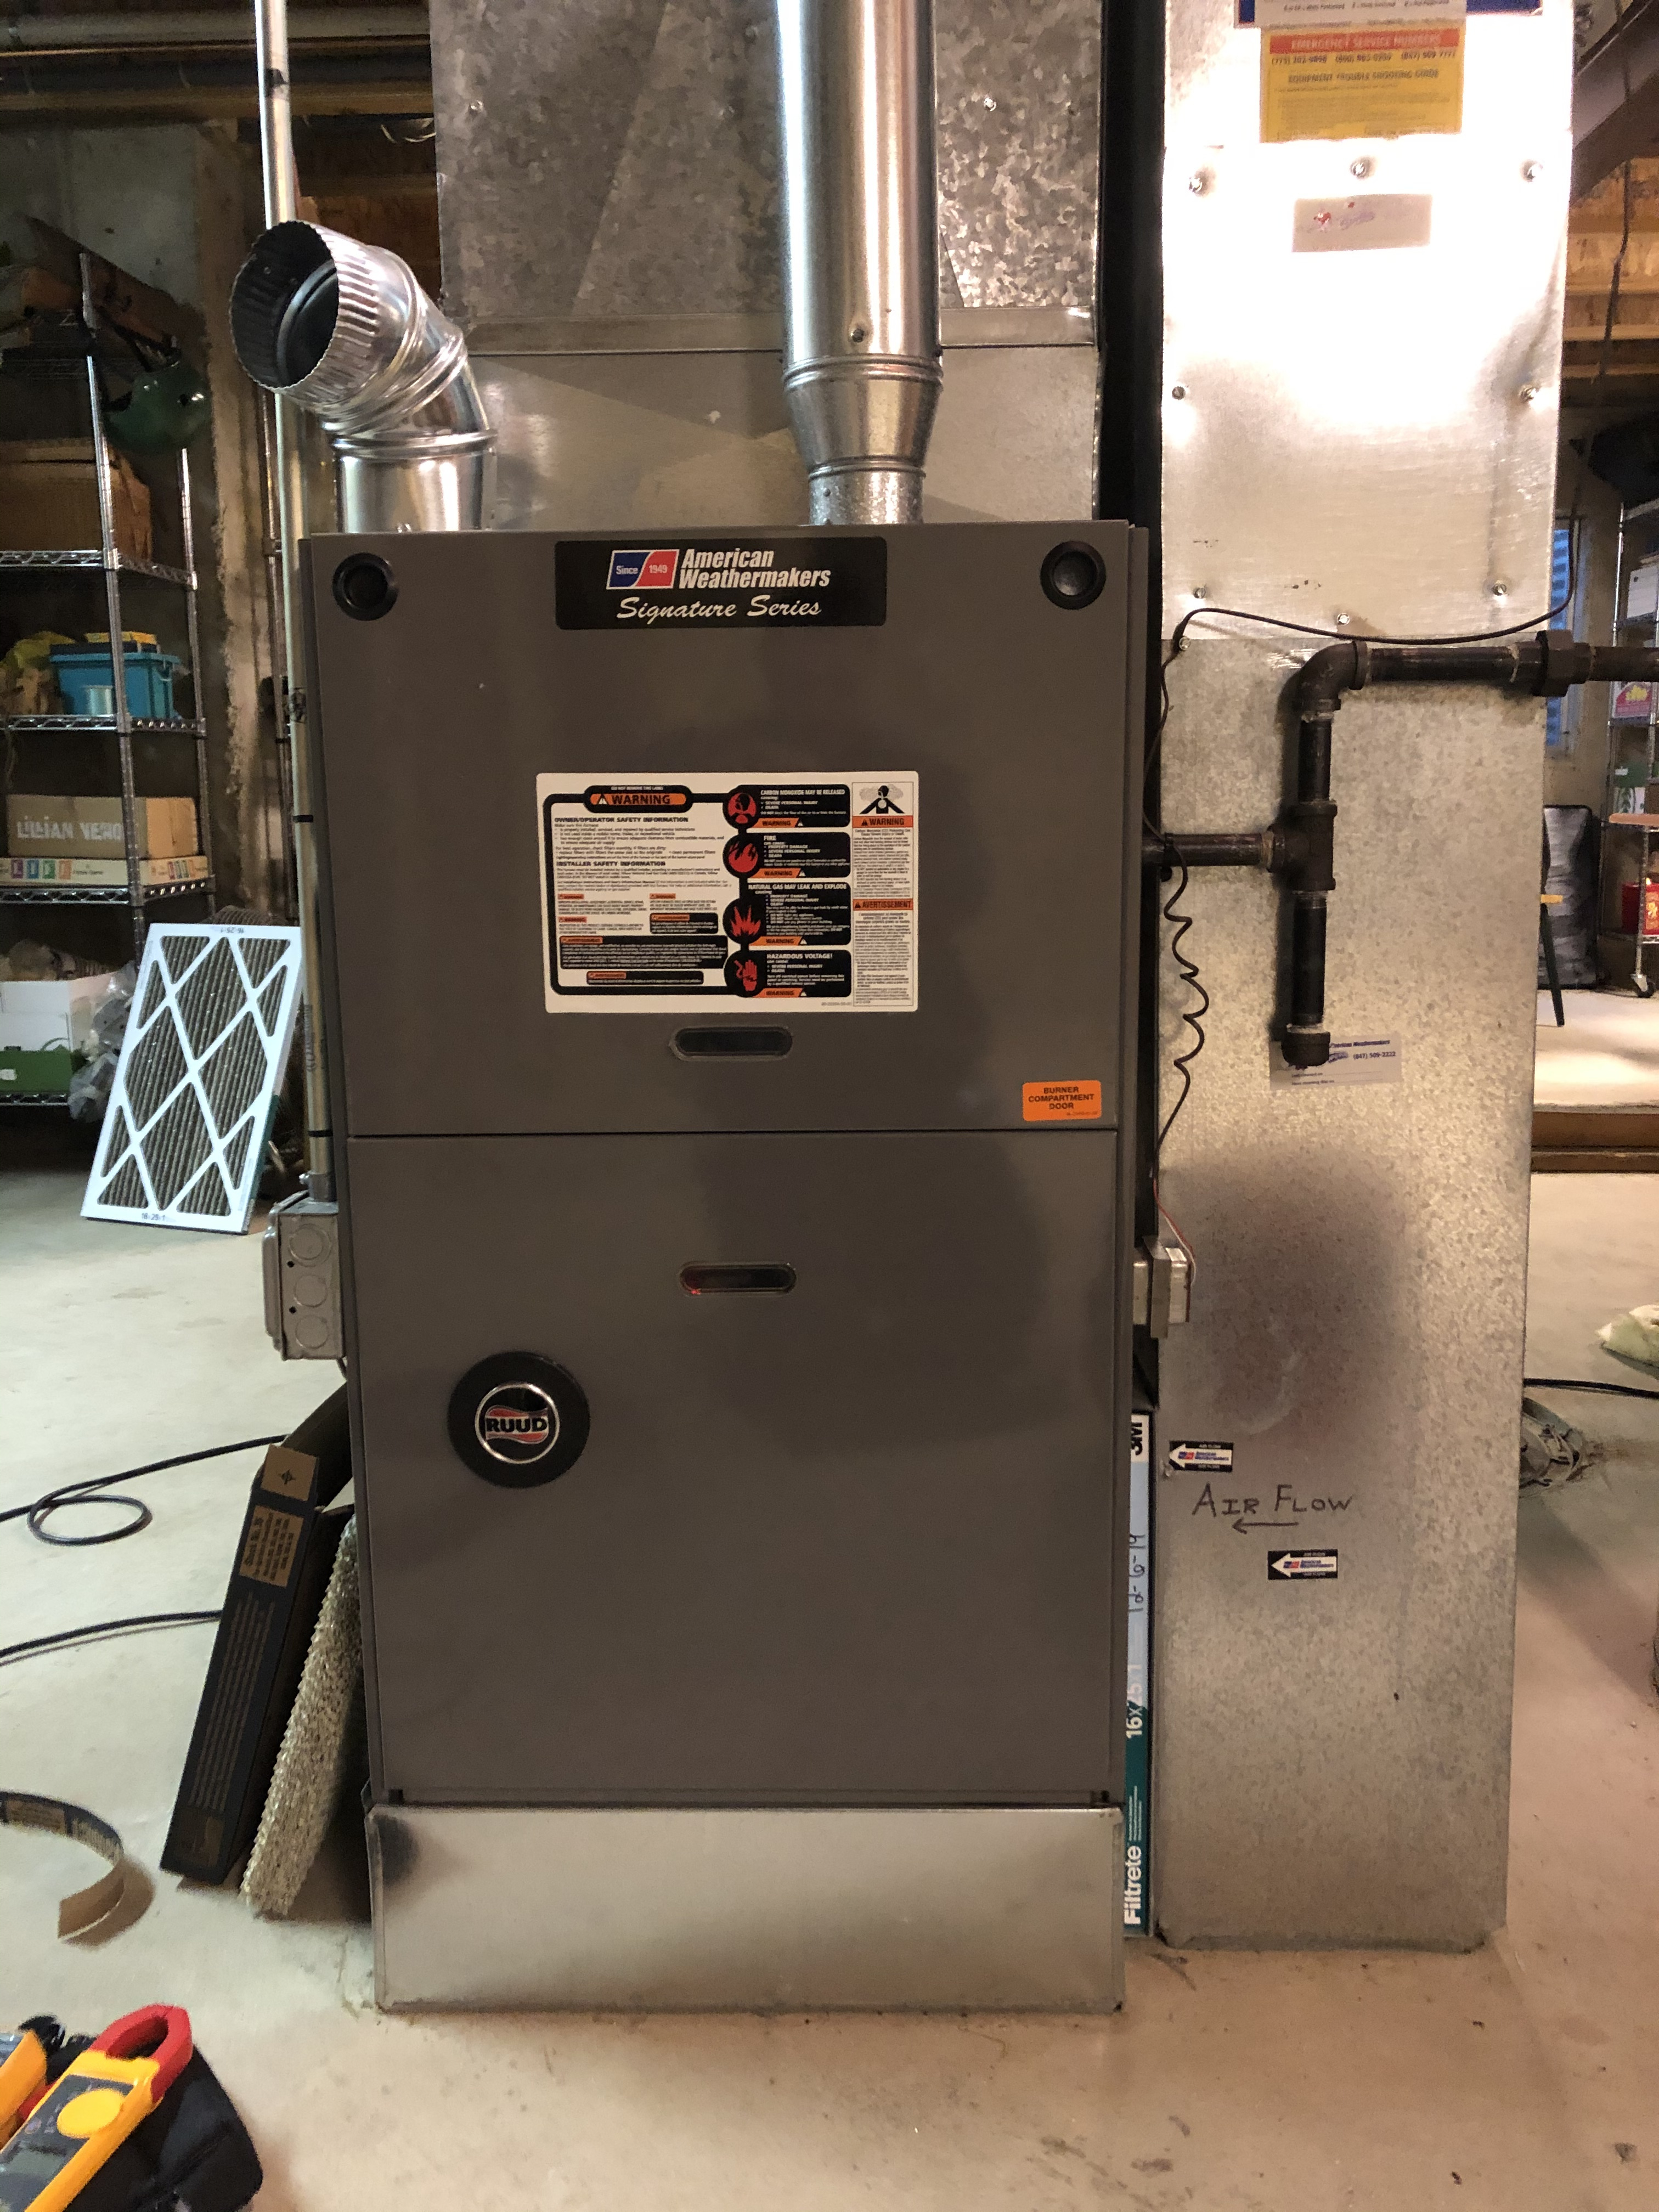 Keep your Ruud furnace running like new. Call American Weathermakers today and schedule a maintenance today.